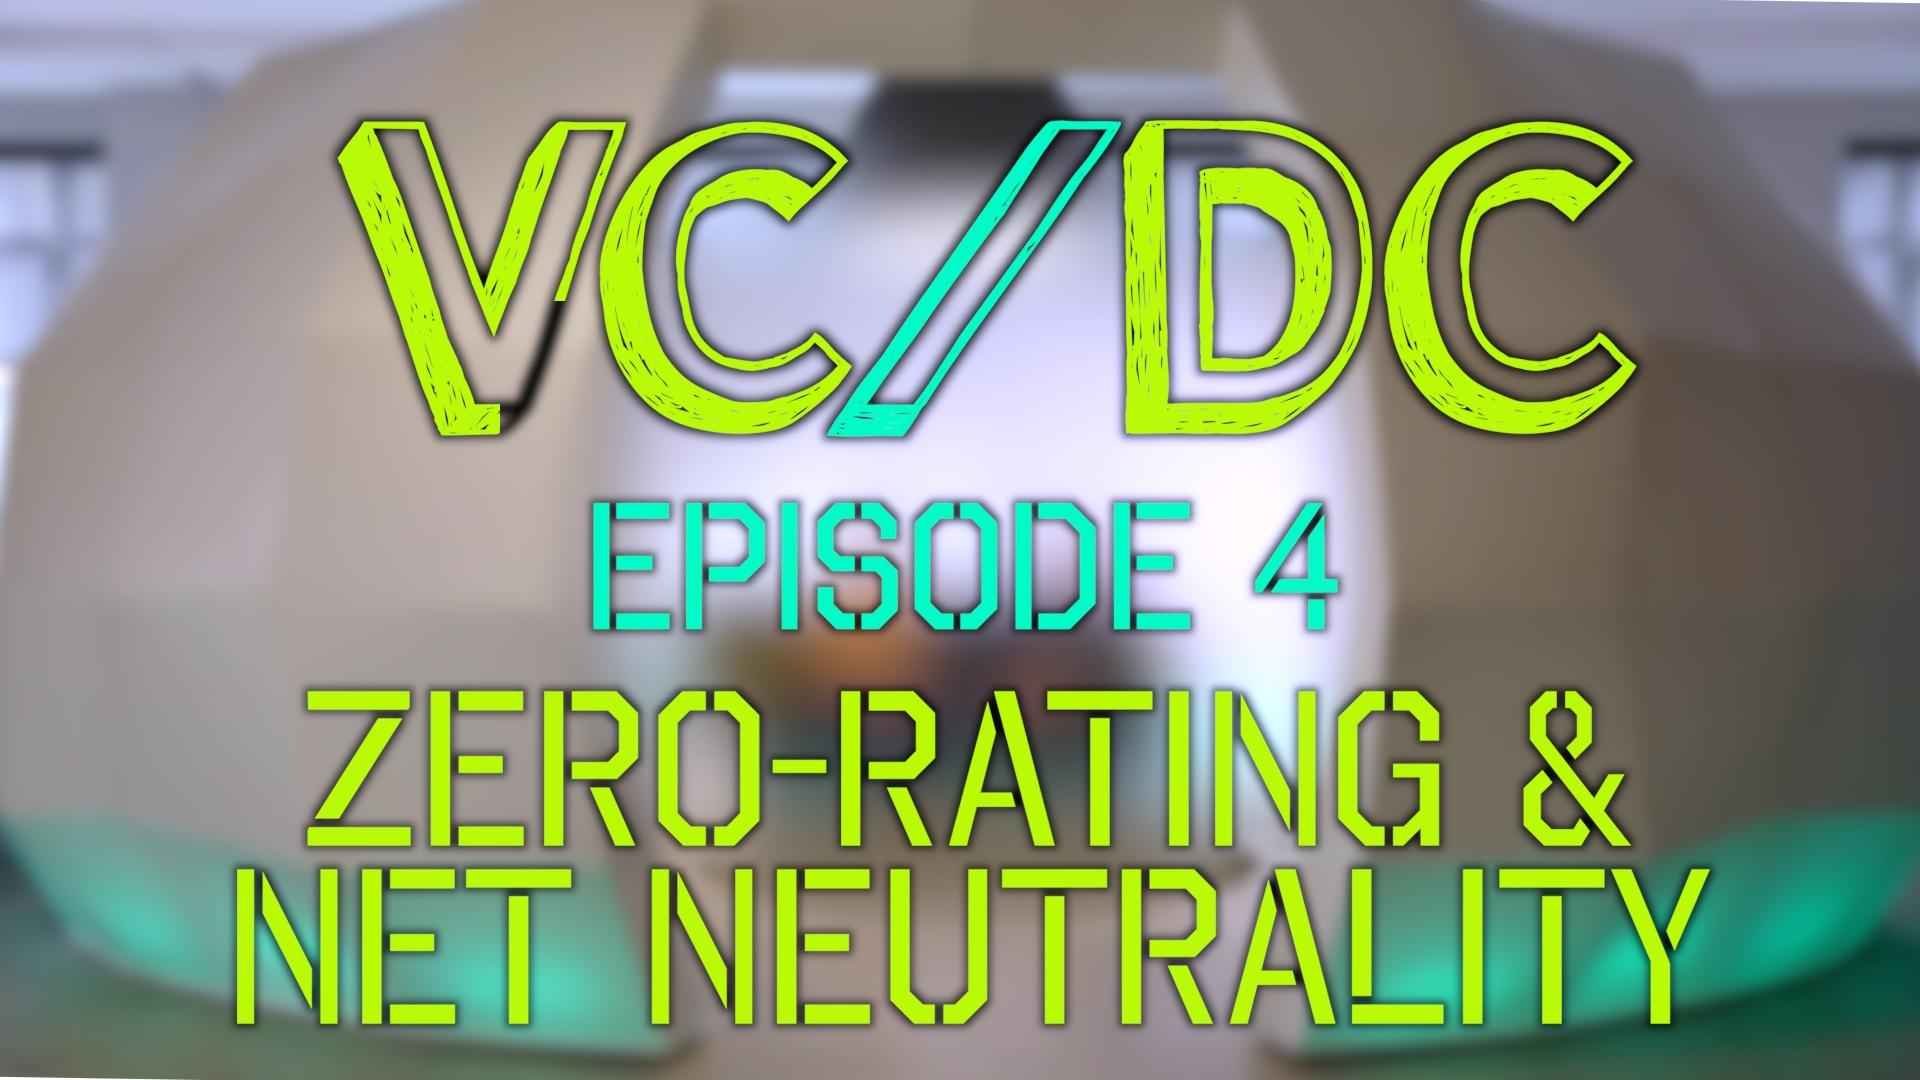 VC/DC Episode 4: The U.N., Zero-rating and Net Neutrality